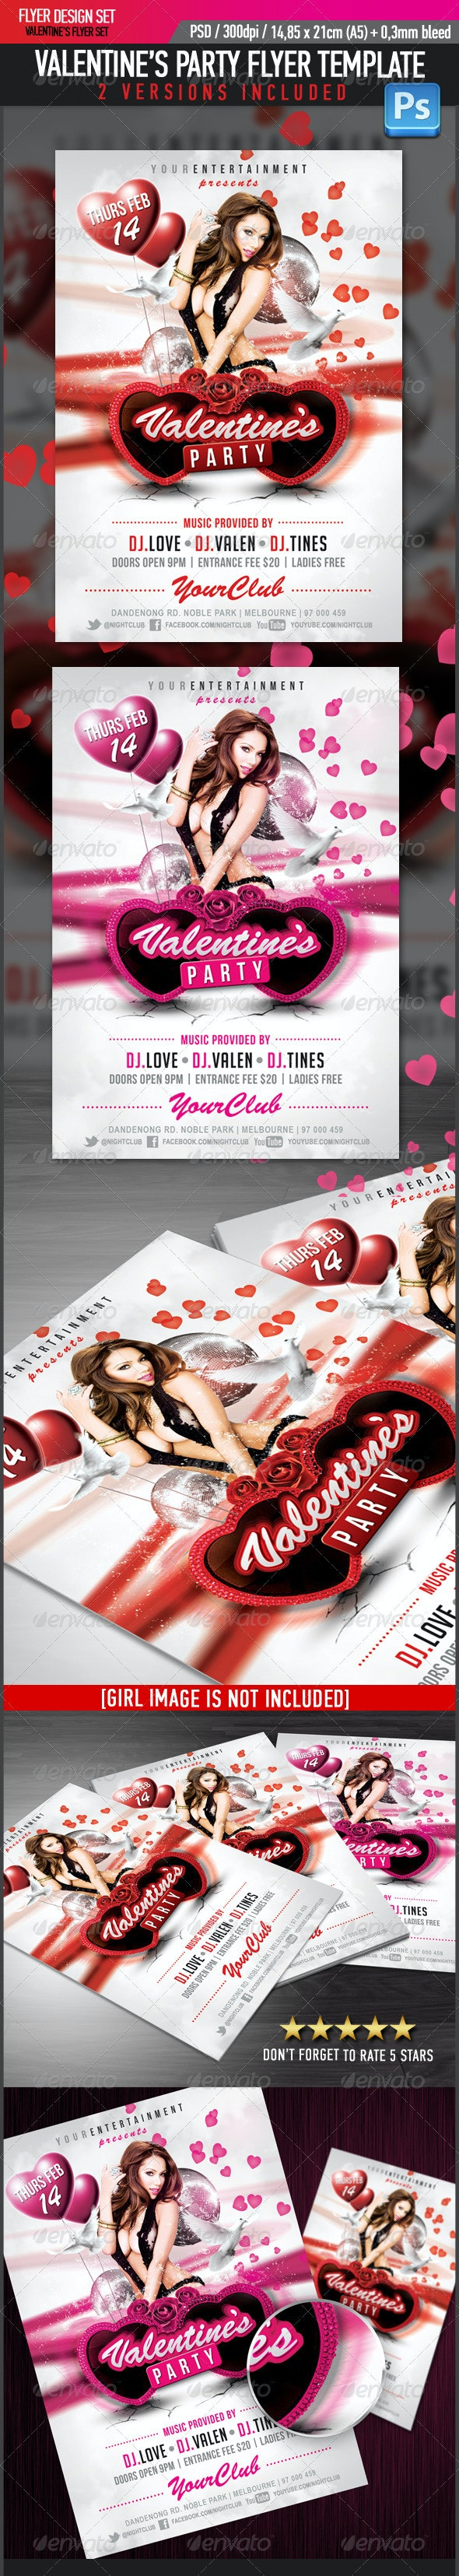 Valentine's Glamour Party Flyer Template - Clubs & Parties Events